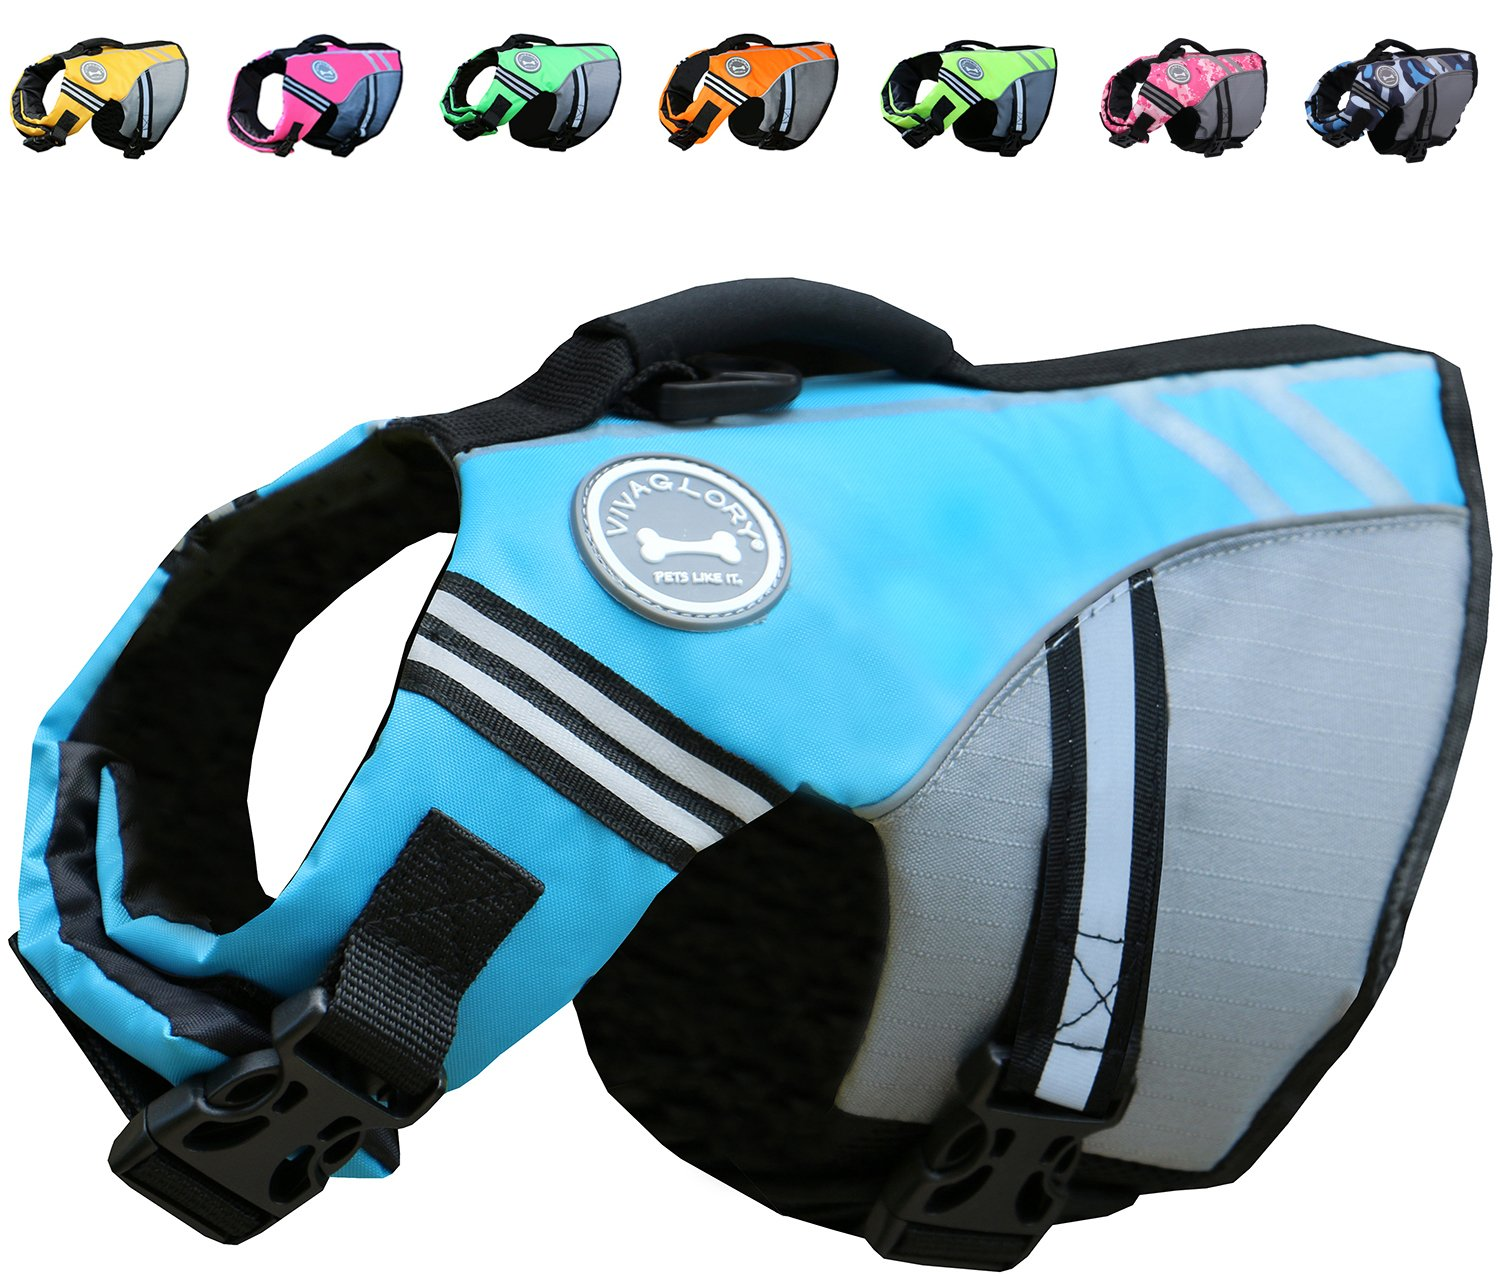 Vivaglory New Sports Style Ripstop Dog Life Jacket with Superior Buoyancy & Rescue Handle, Lake Blue, XS